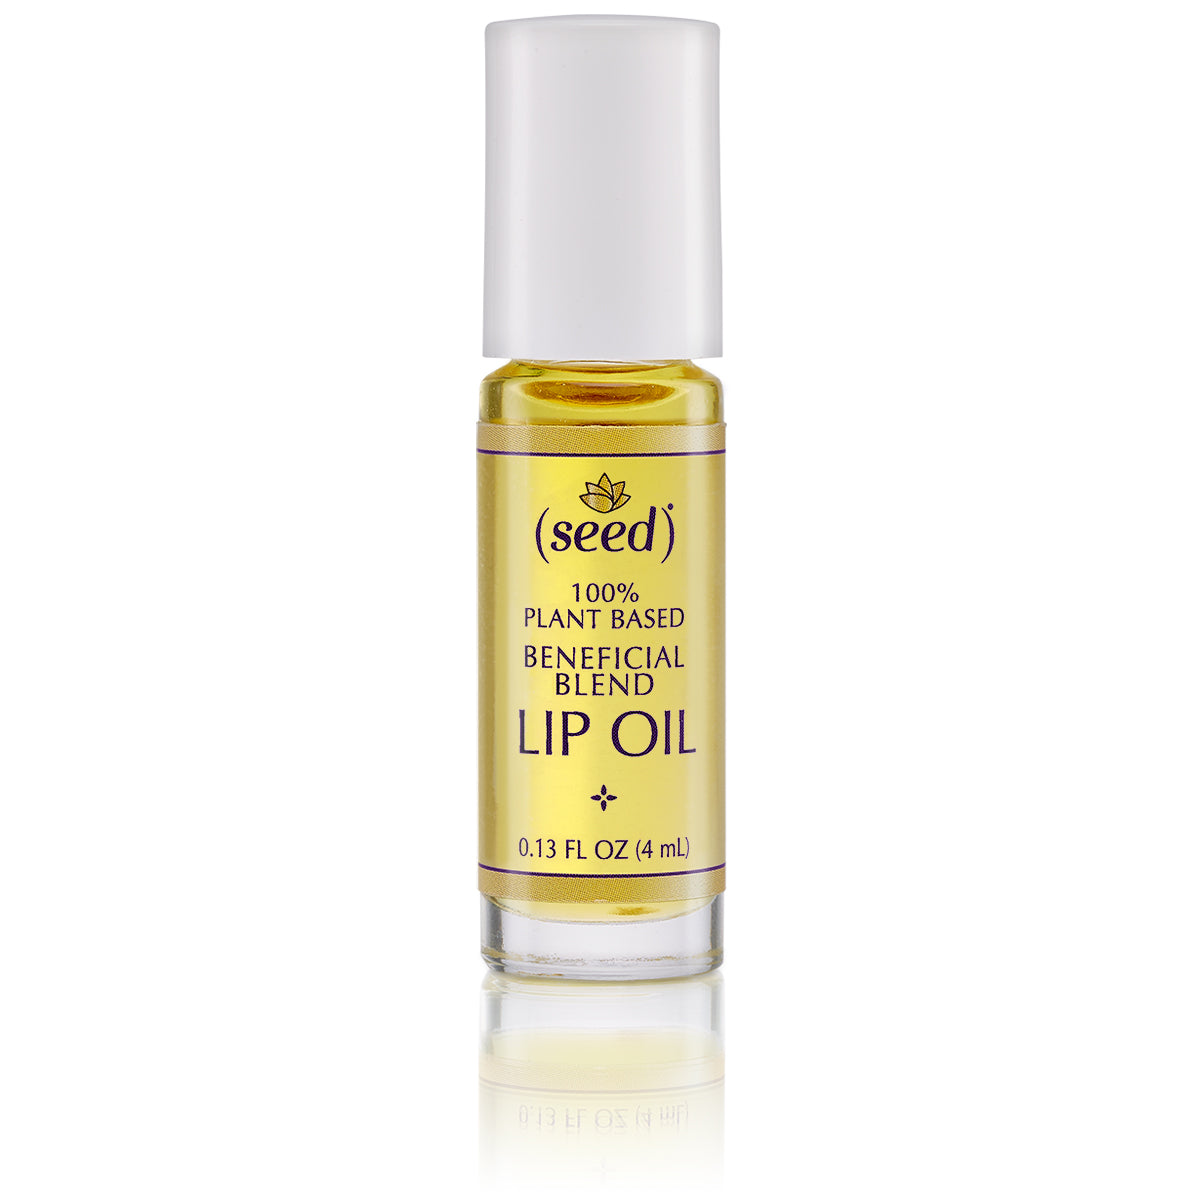 Seed Dream Land Blend Lip Oil features lemon, lavender, and ginger essential oils